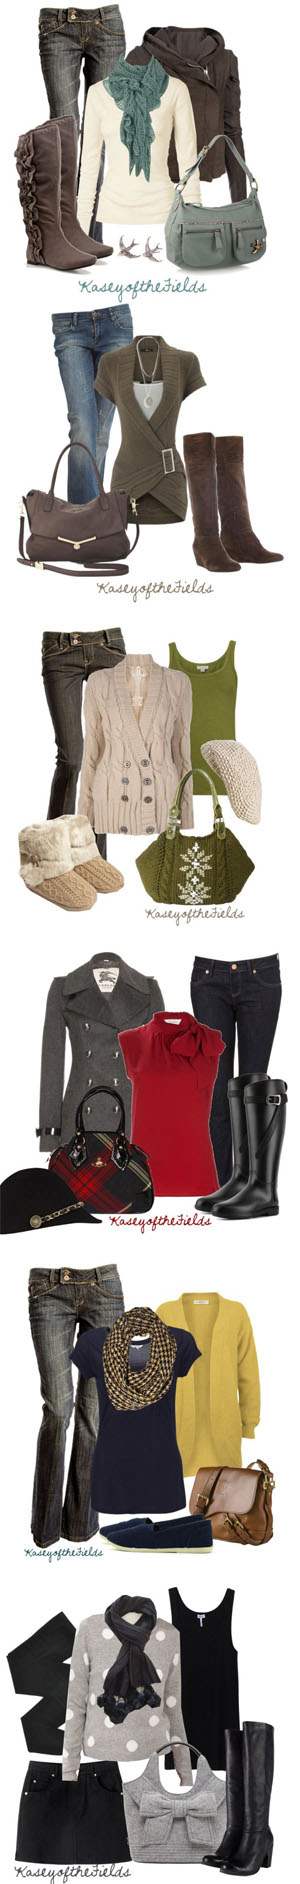 cozy fall fashions